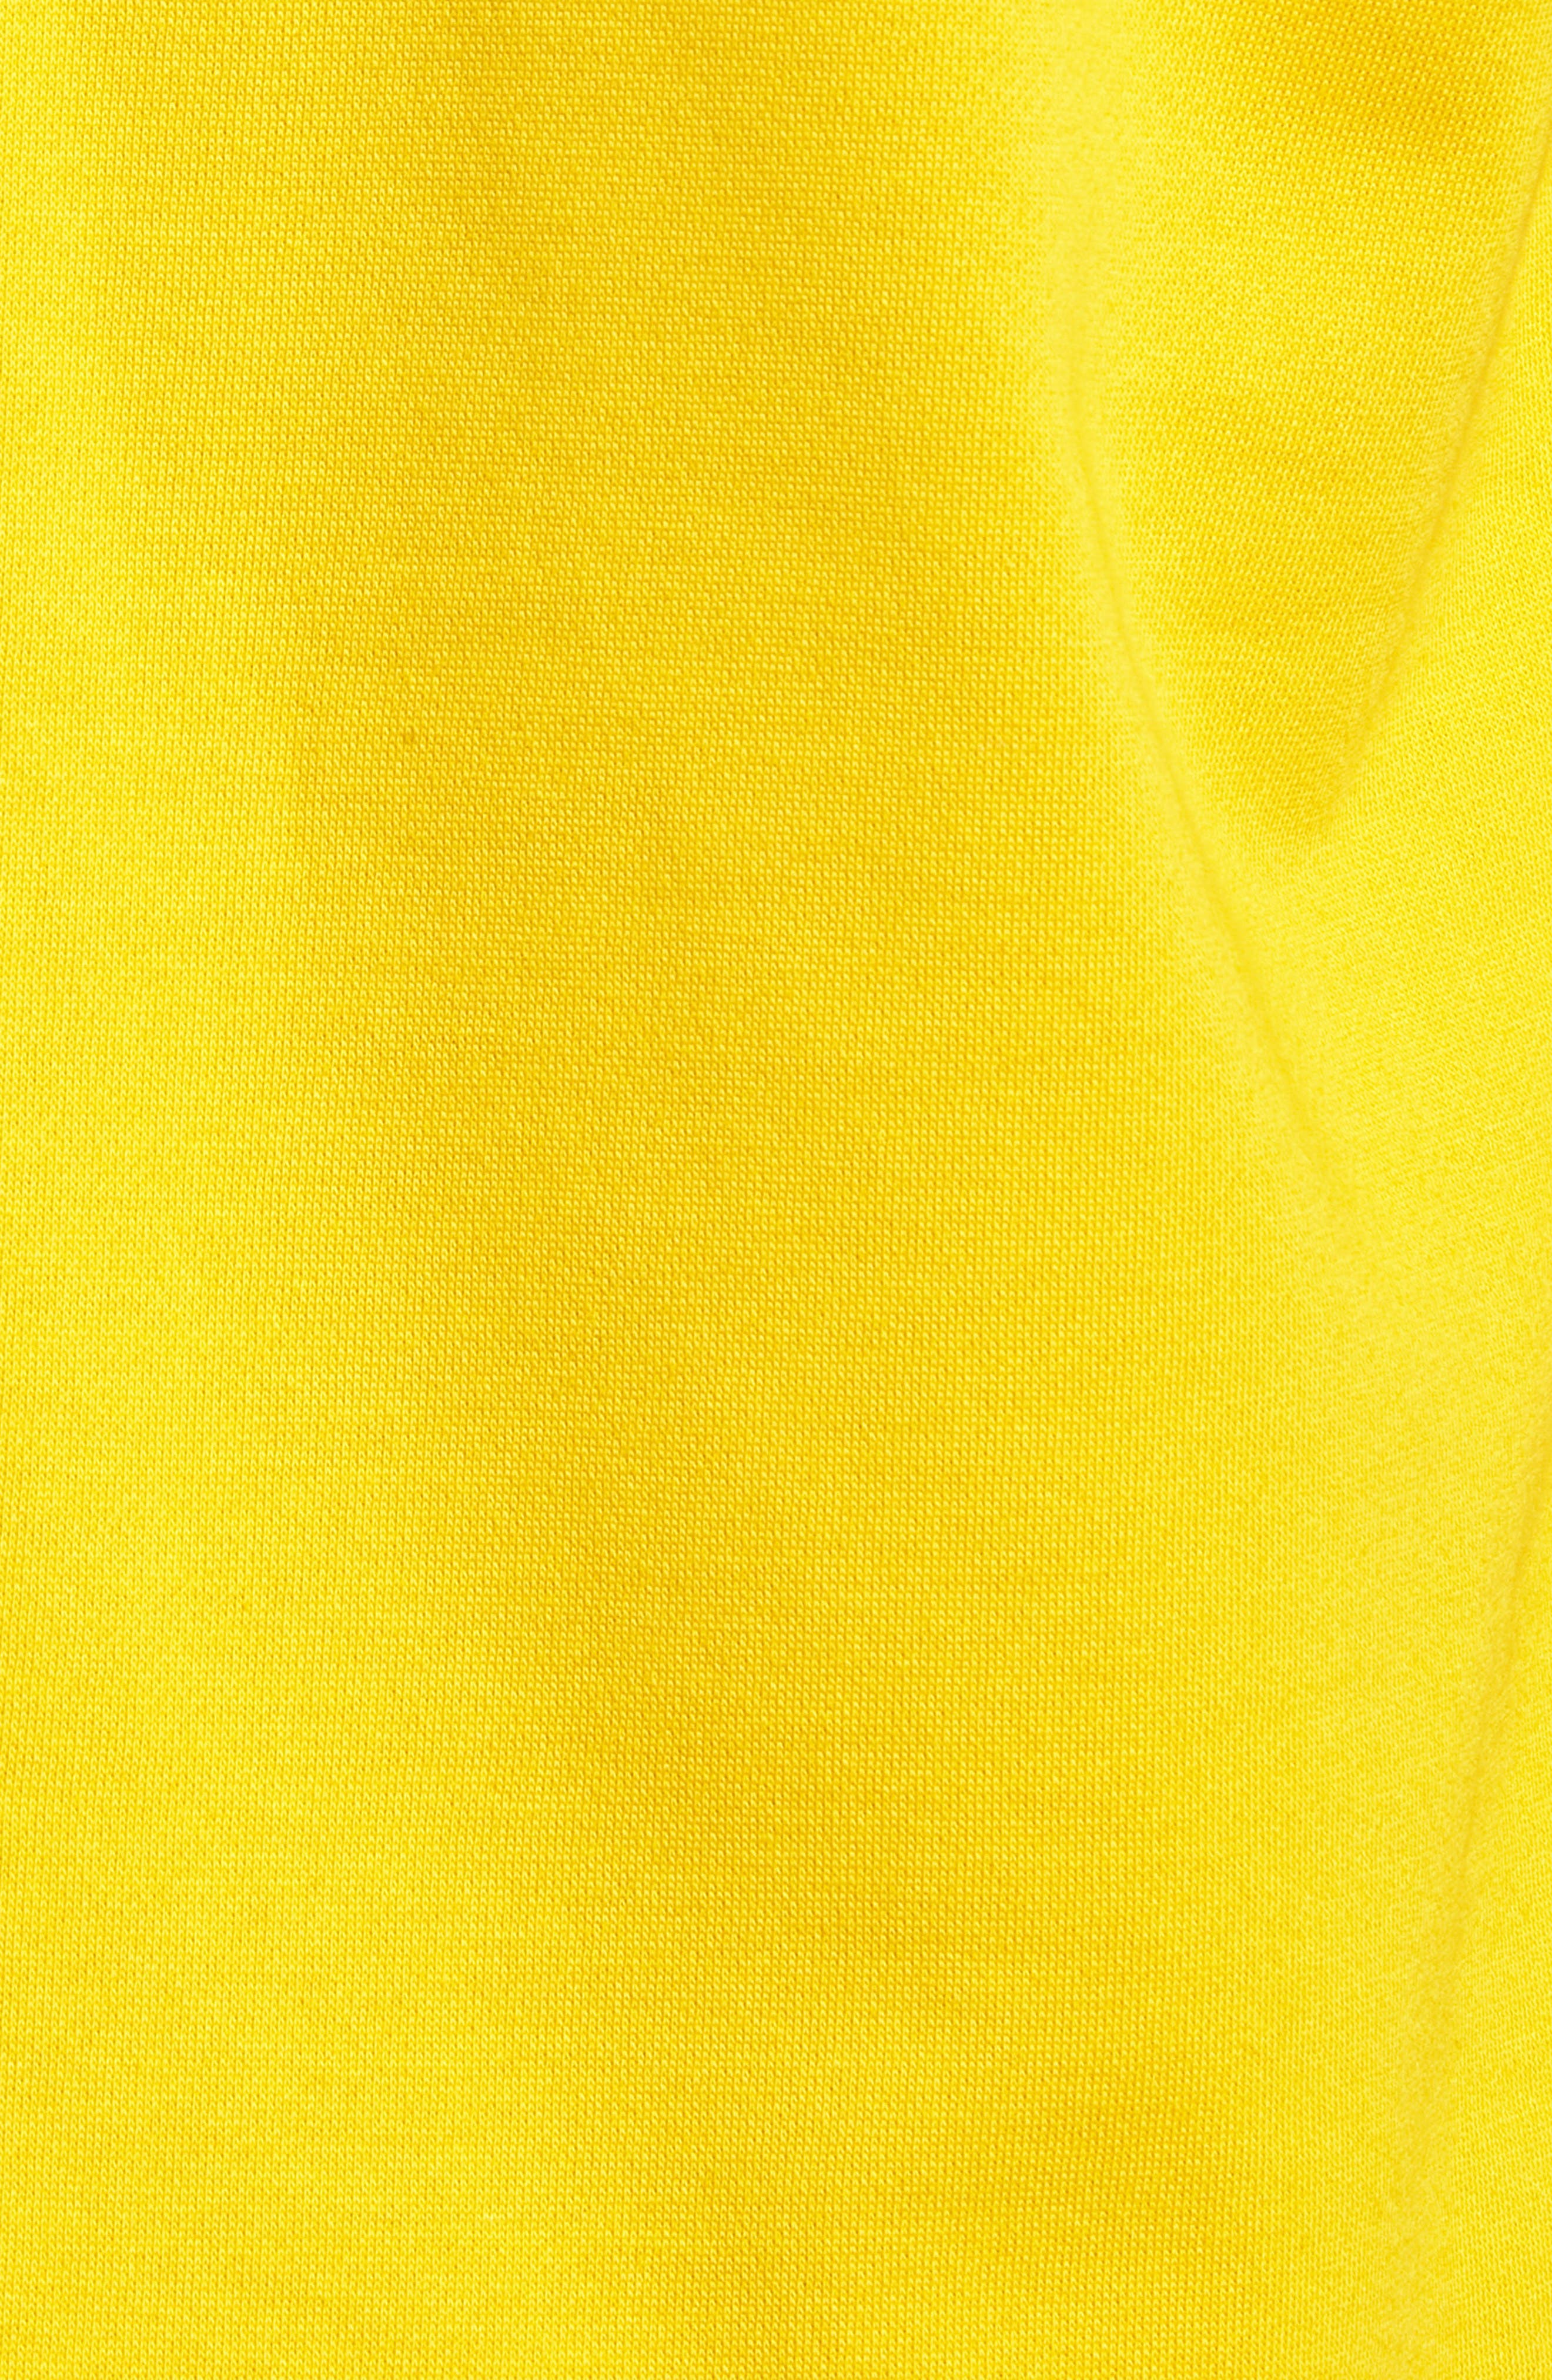 Loma Sweatshirt,                             Alternate thumbnail 5, color,                             MUSTARD YELLOW